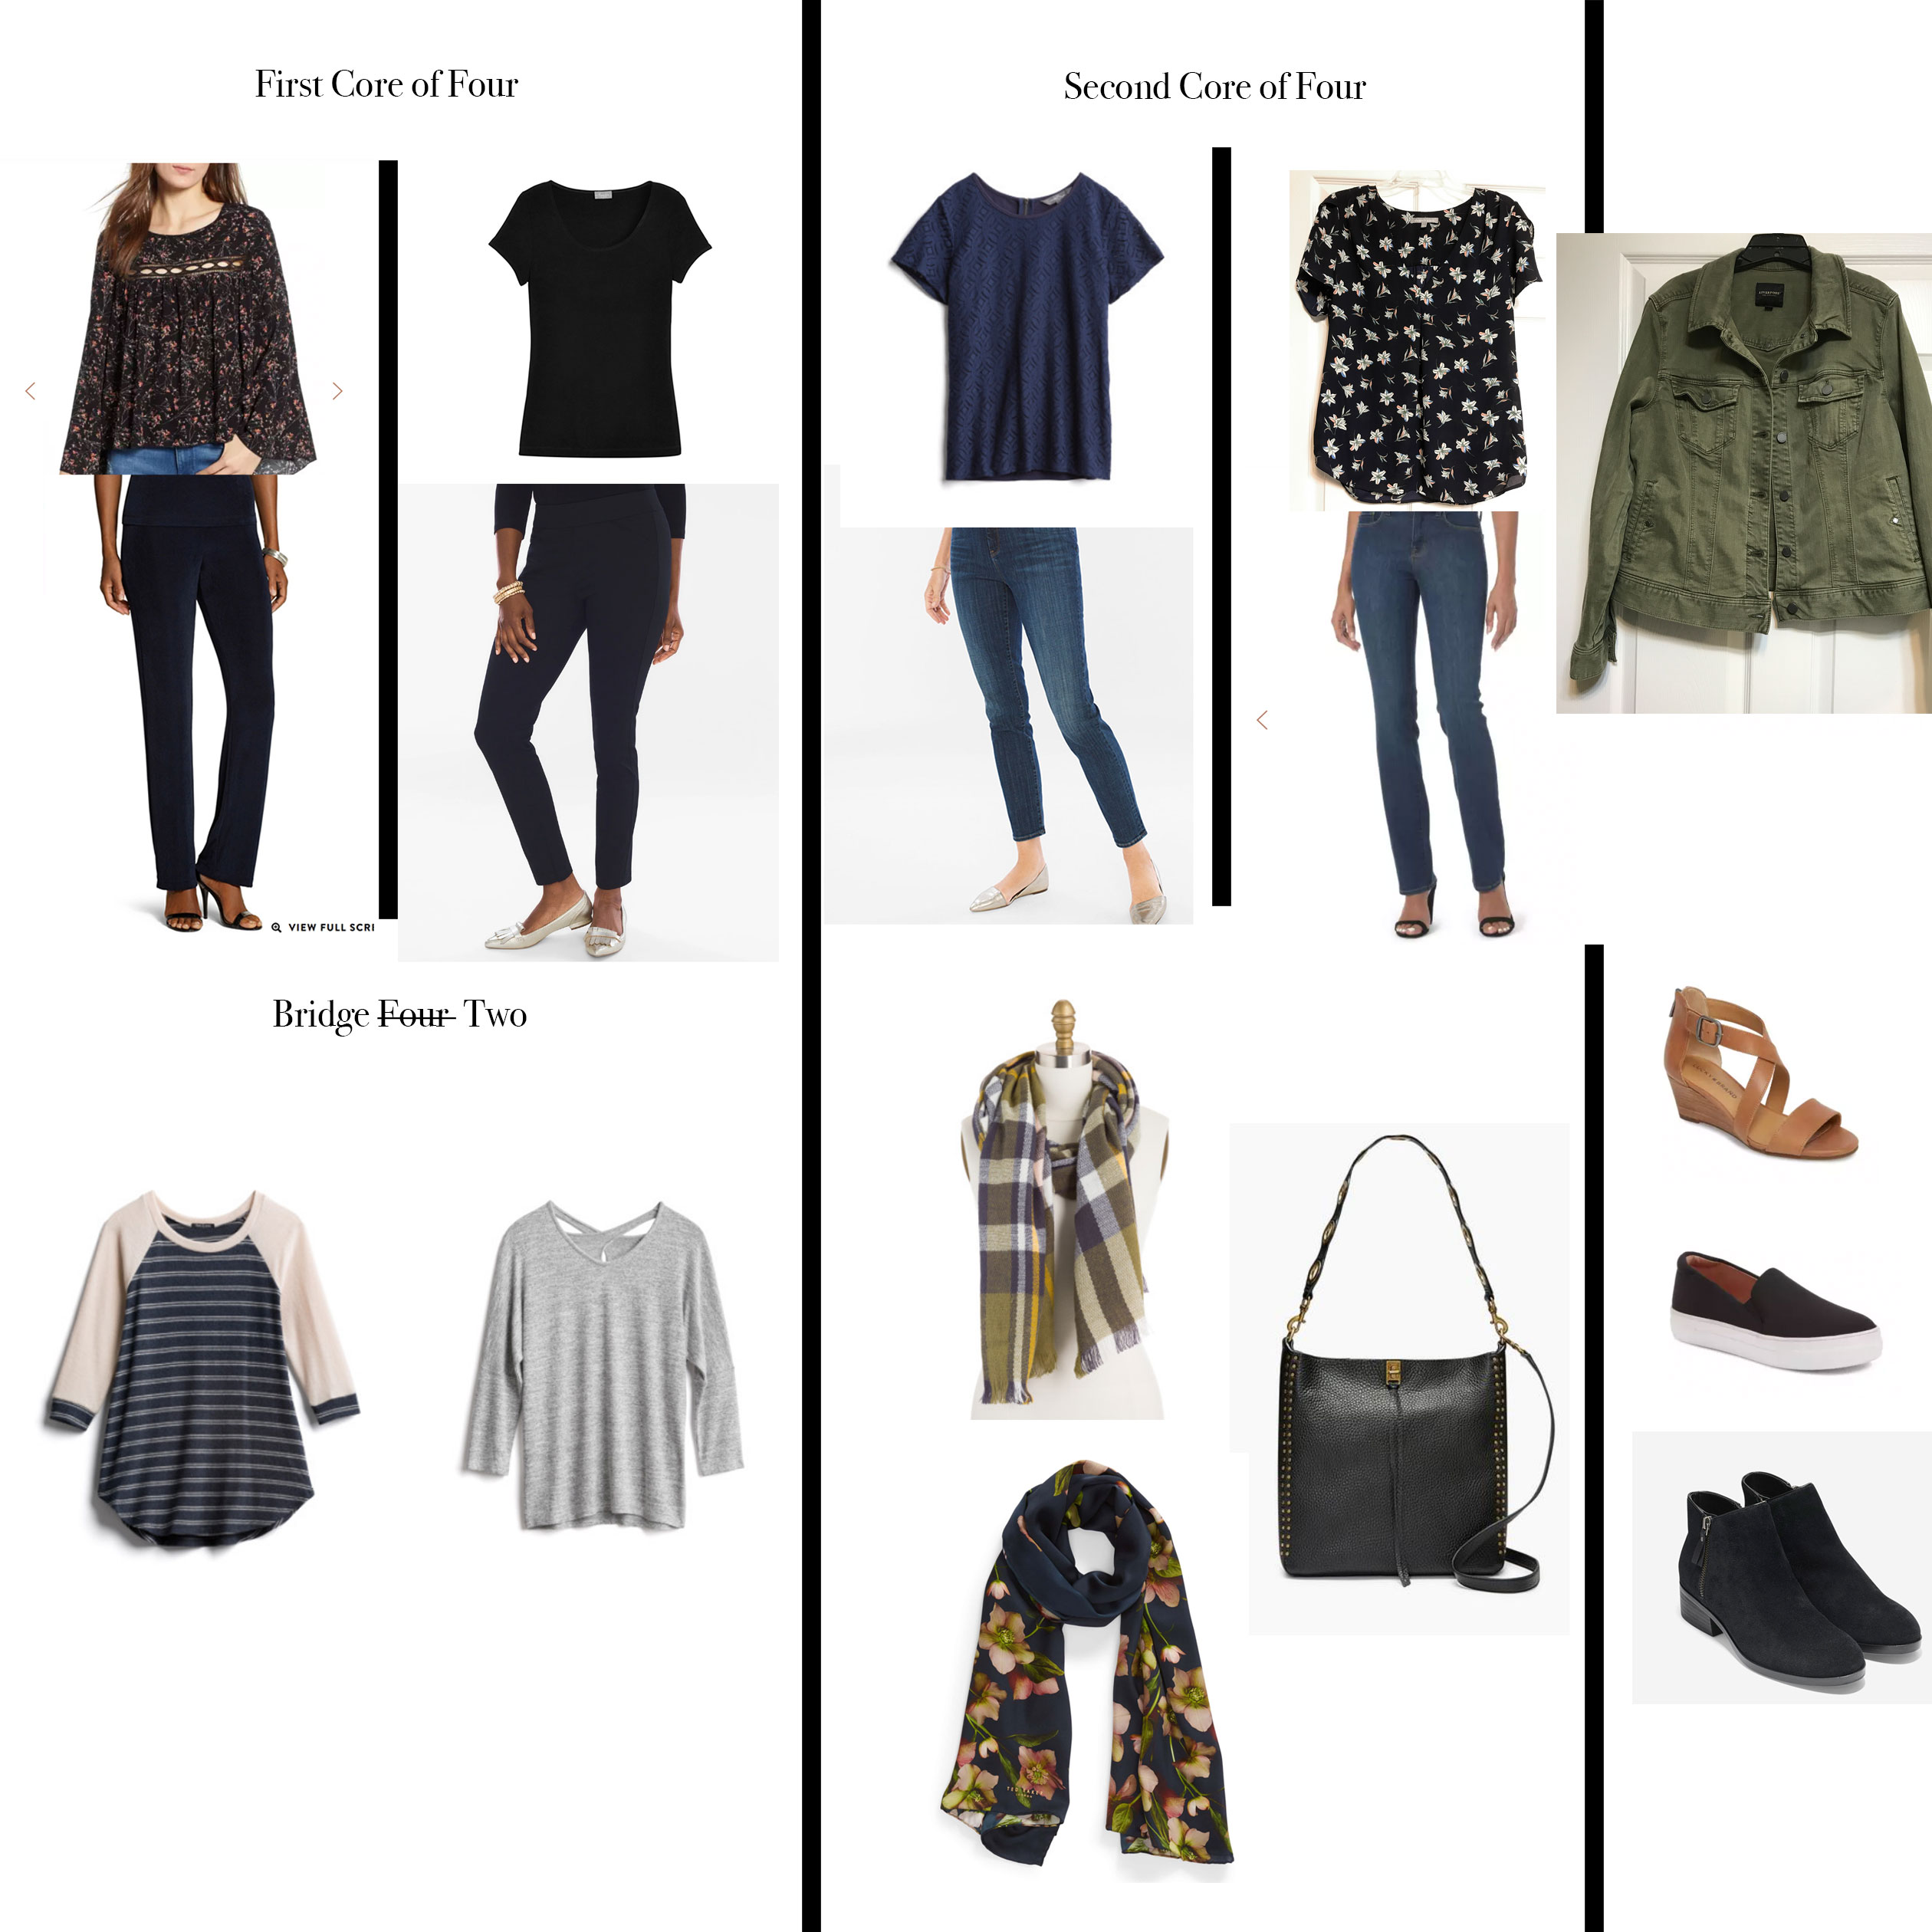 db0befac650 Capsule wardrobe around two dark neutrals  black and indigo blue. Clothes  from Nordstrom